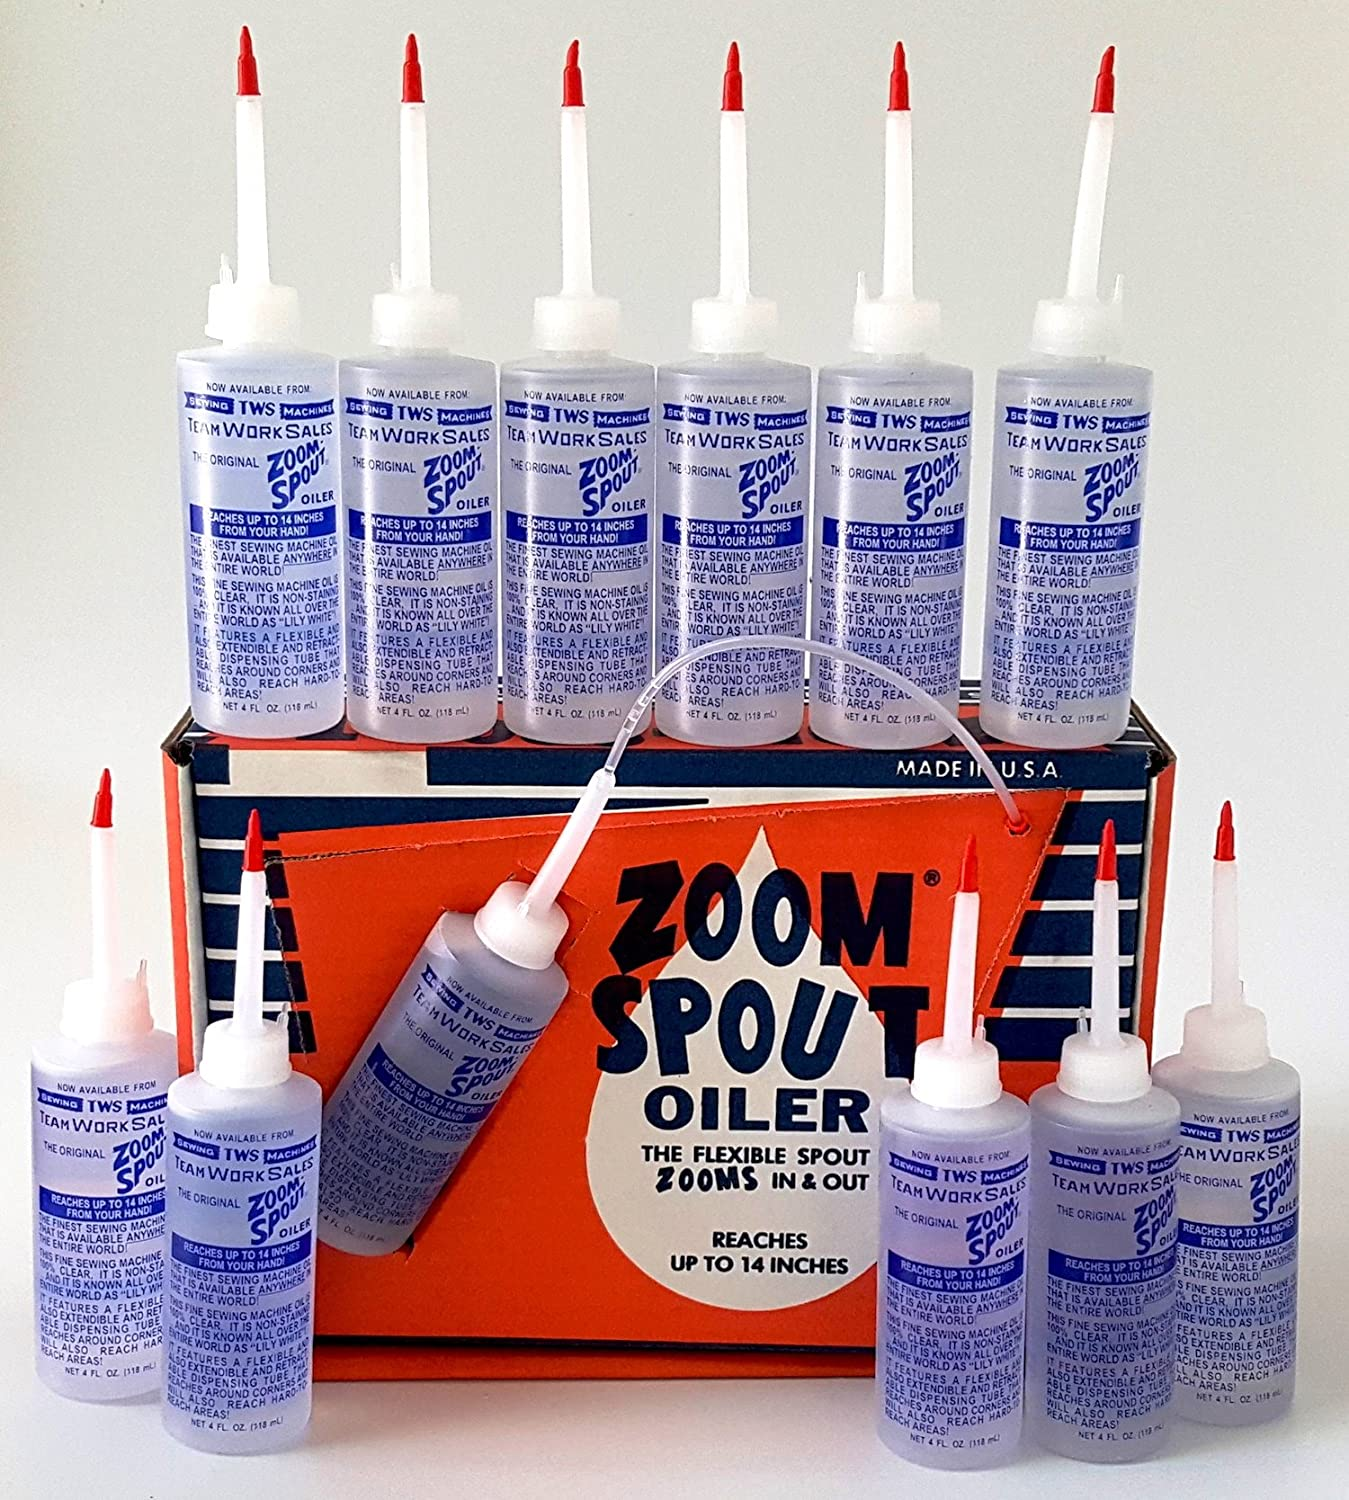 ZOOM SPOUT OILERS - 4 OZ CLEAR WHITE LUBRICANT OIL PACK OF 12 MADE IN THE U.S.A. TEAMWORK SALES